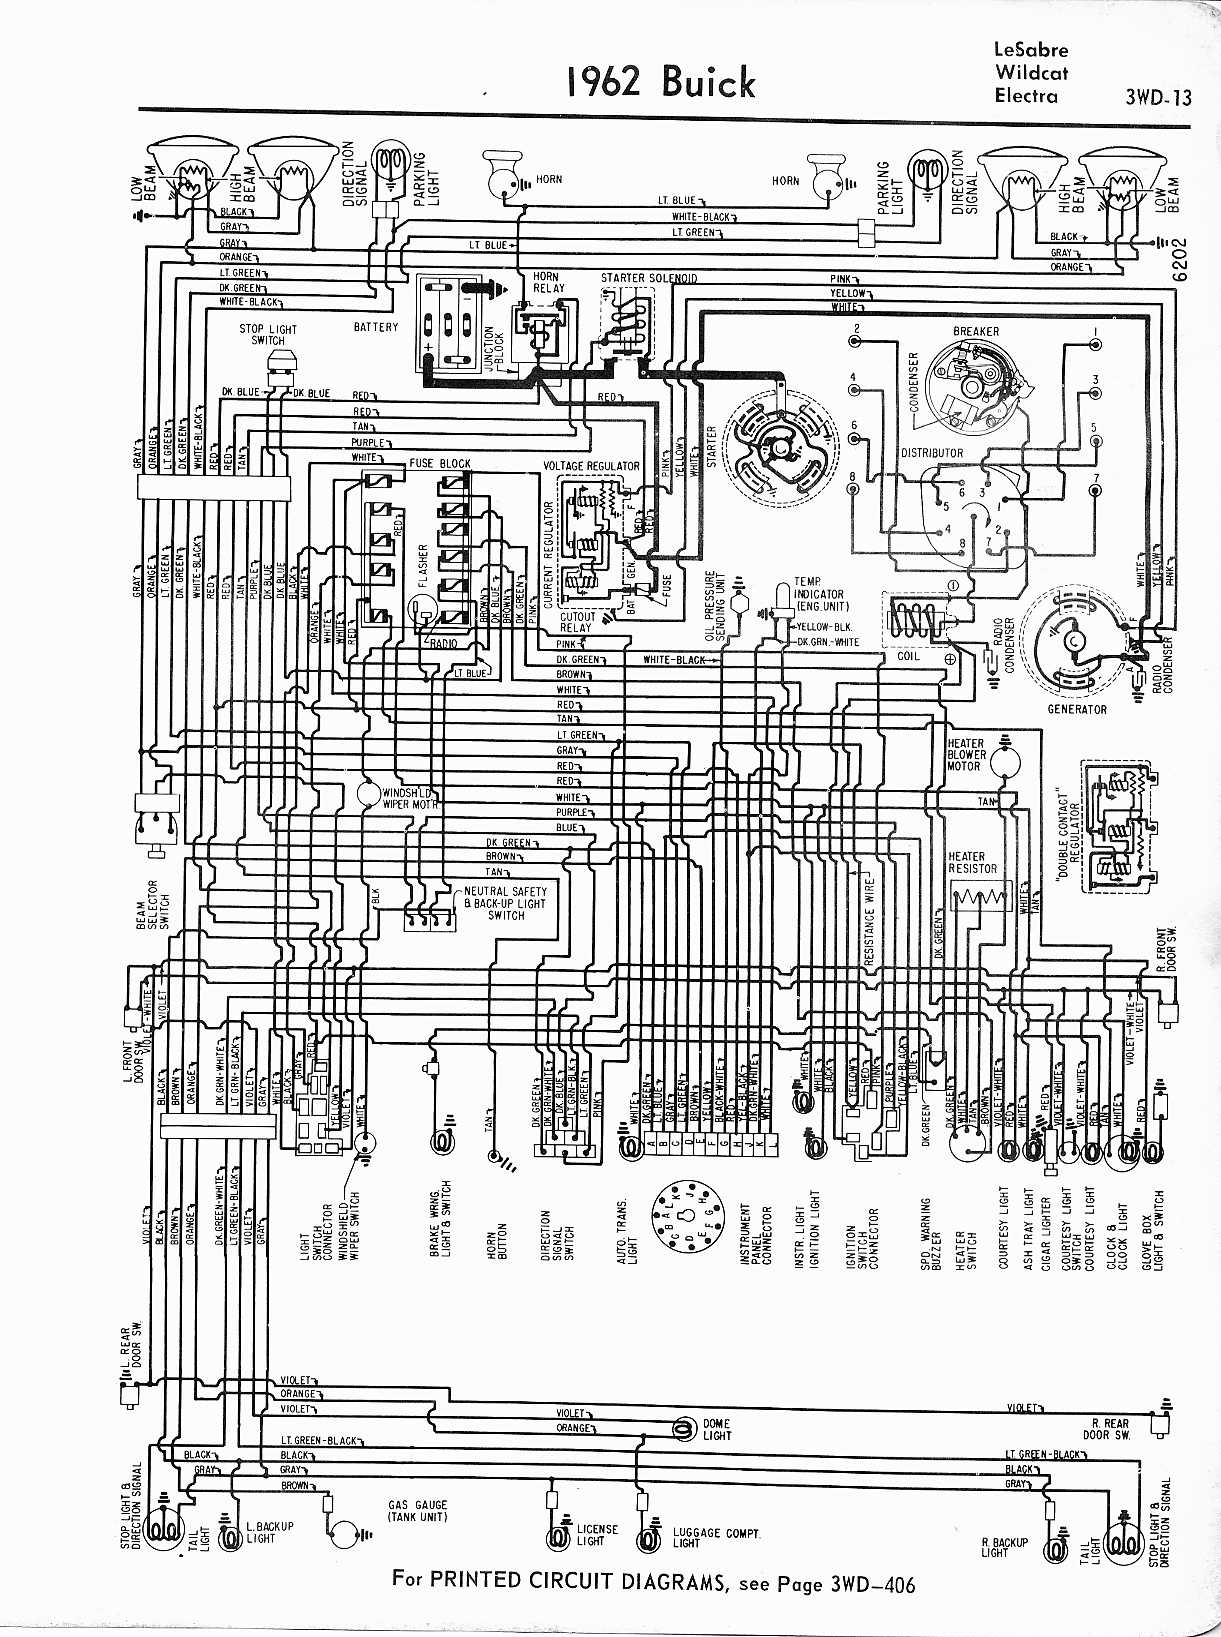 72 88 Royale Wiring Diagrams Library Mitsubishi Lancer Fuse Box Of 1991 1971 Buick Skylark Diagram Starting Know About U2022 1972 Pontiac